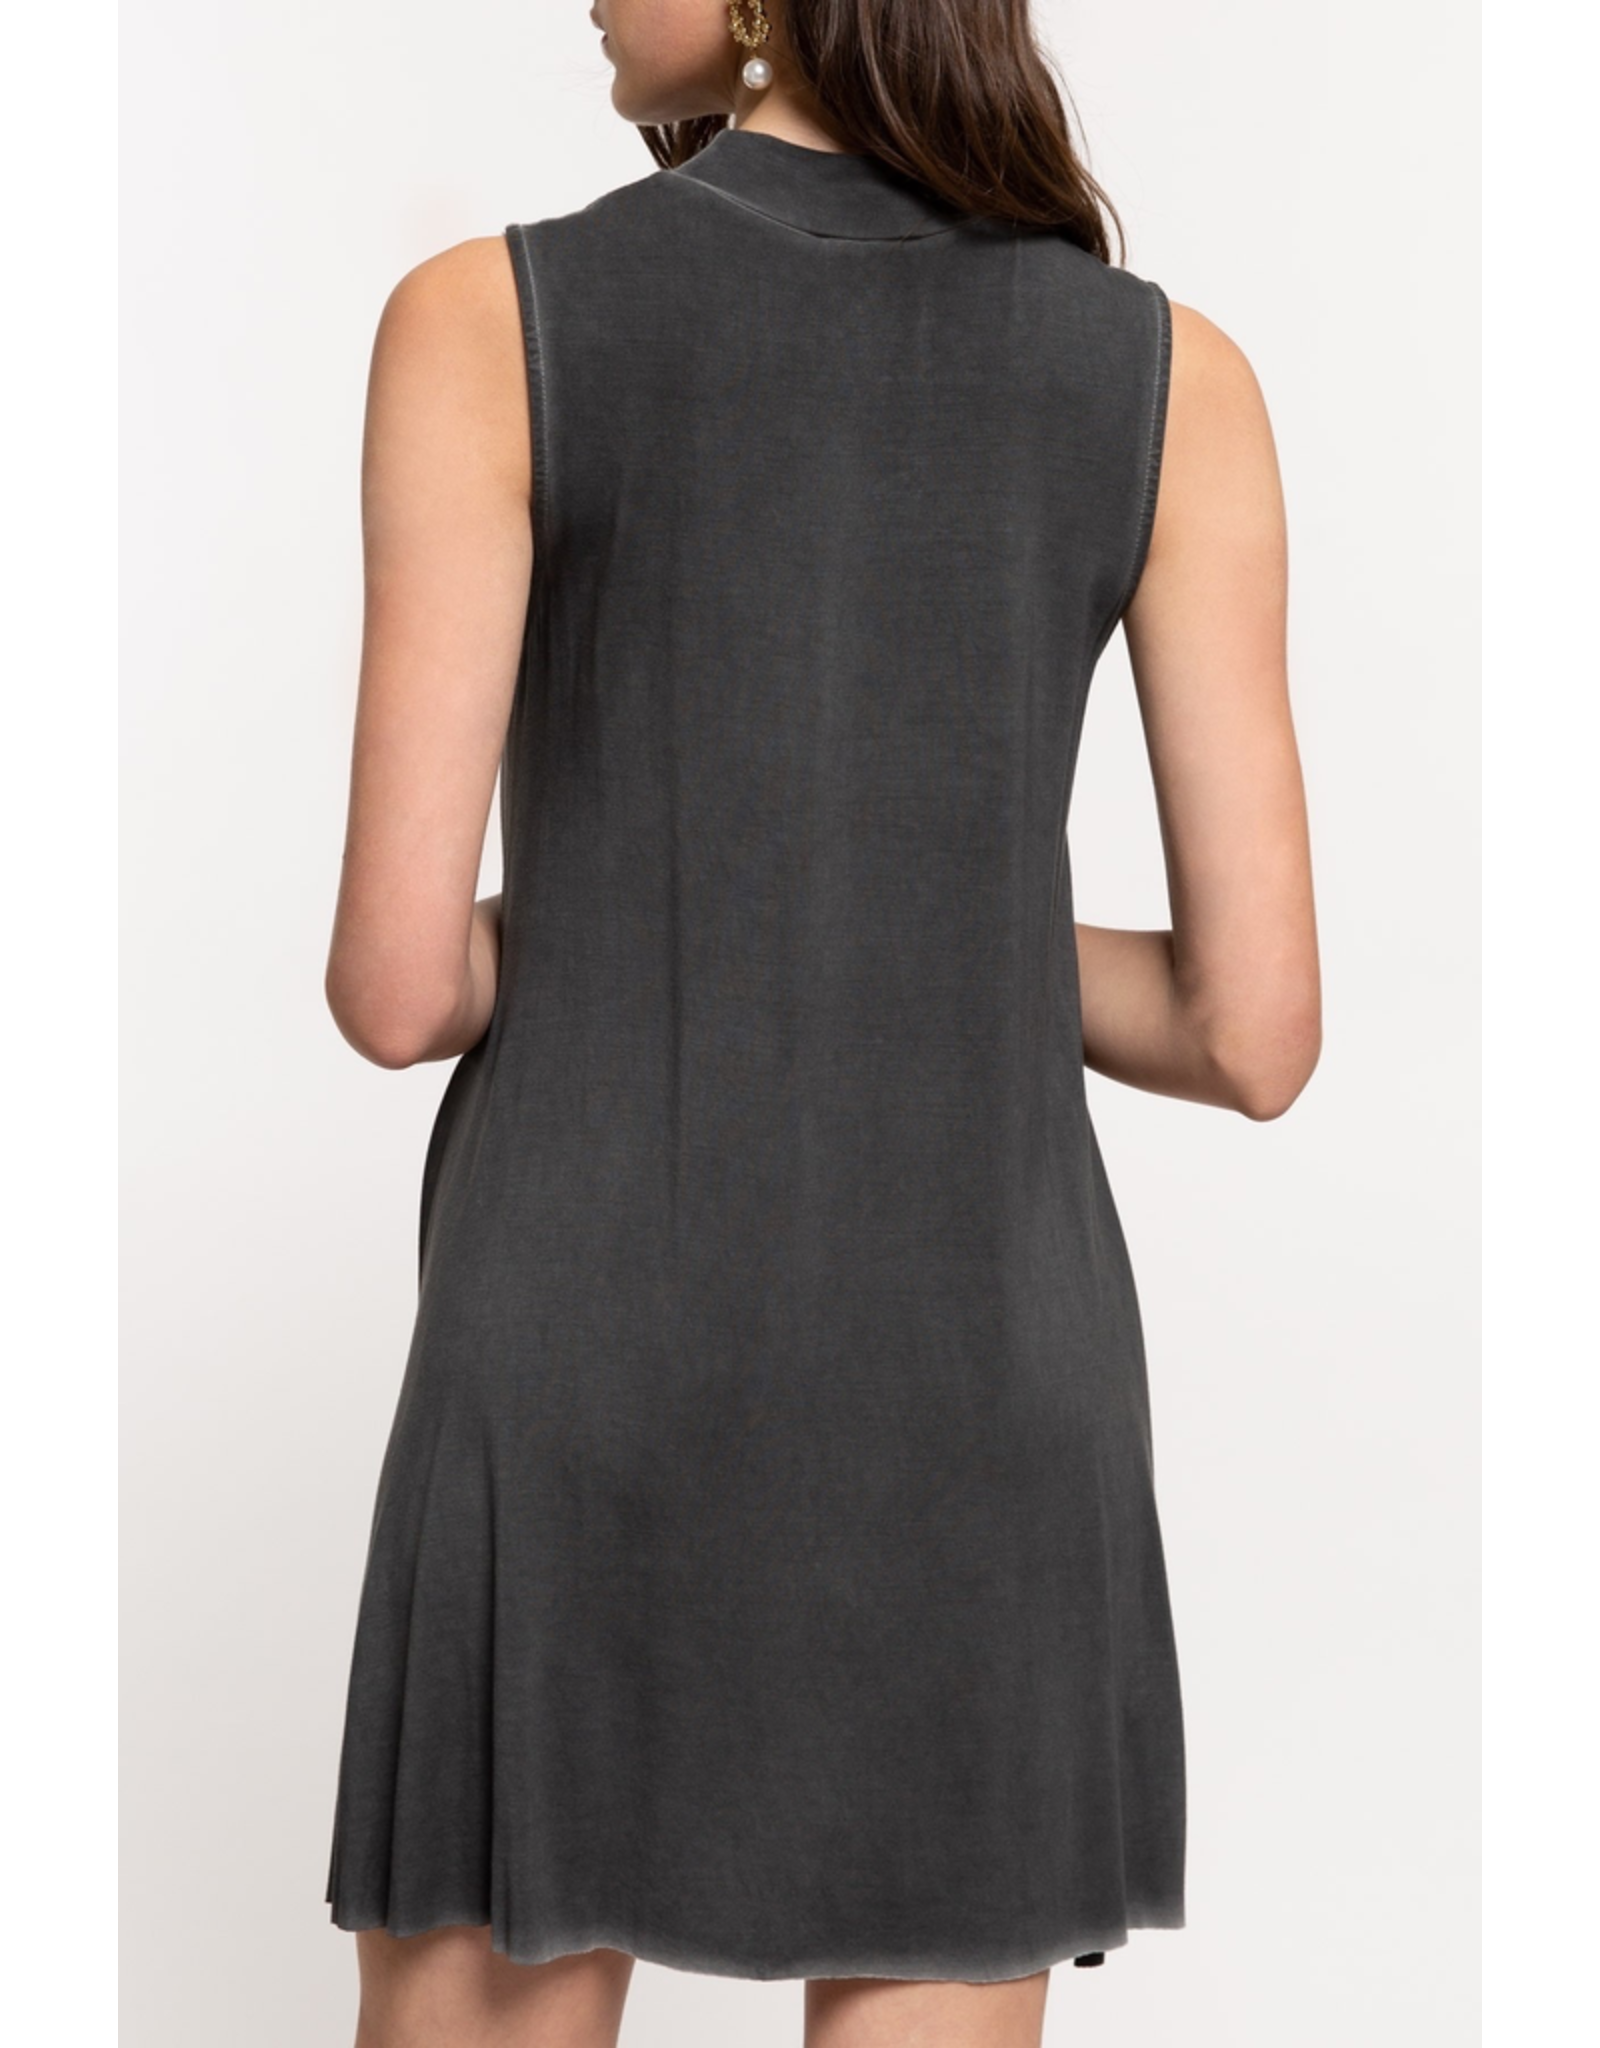 Mockneck Sleeveless Swing Dress